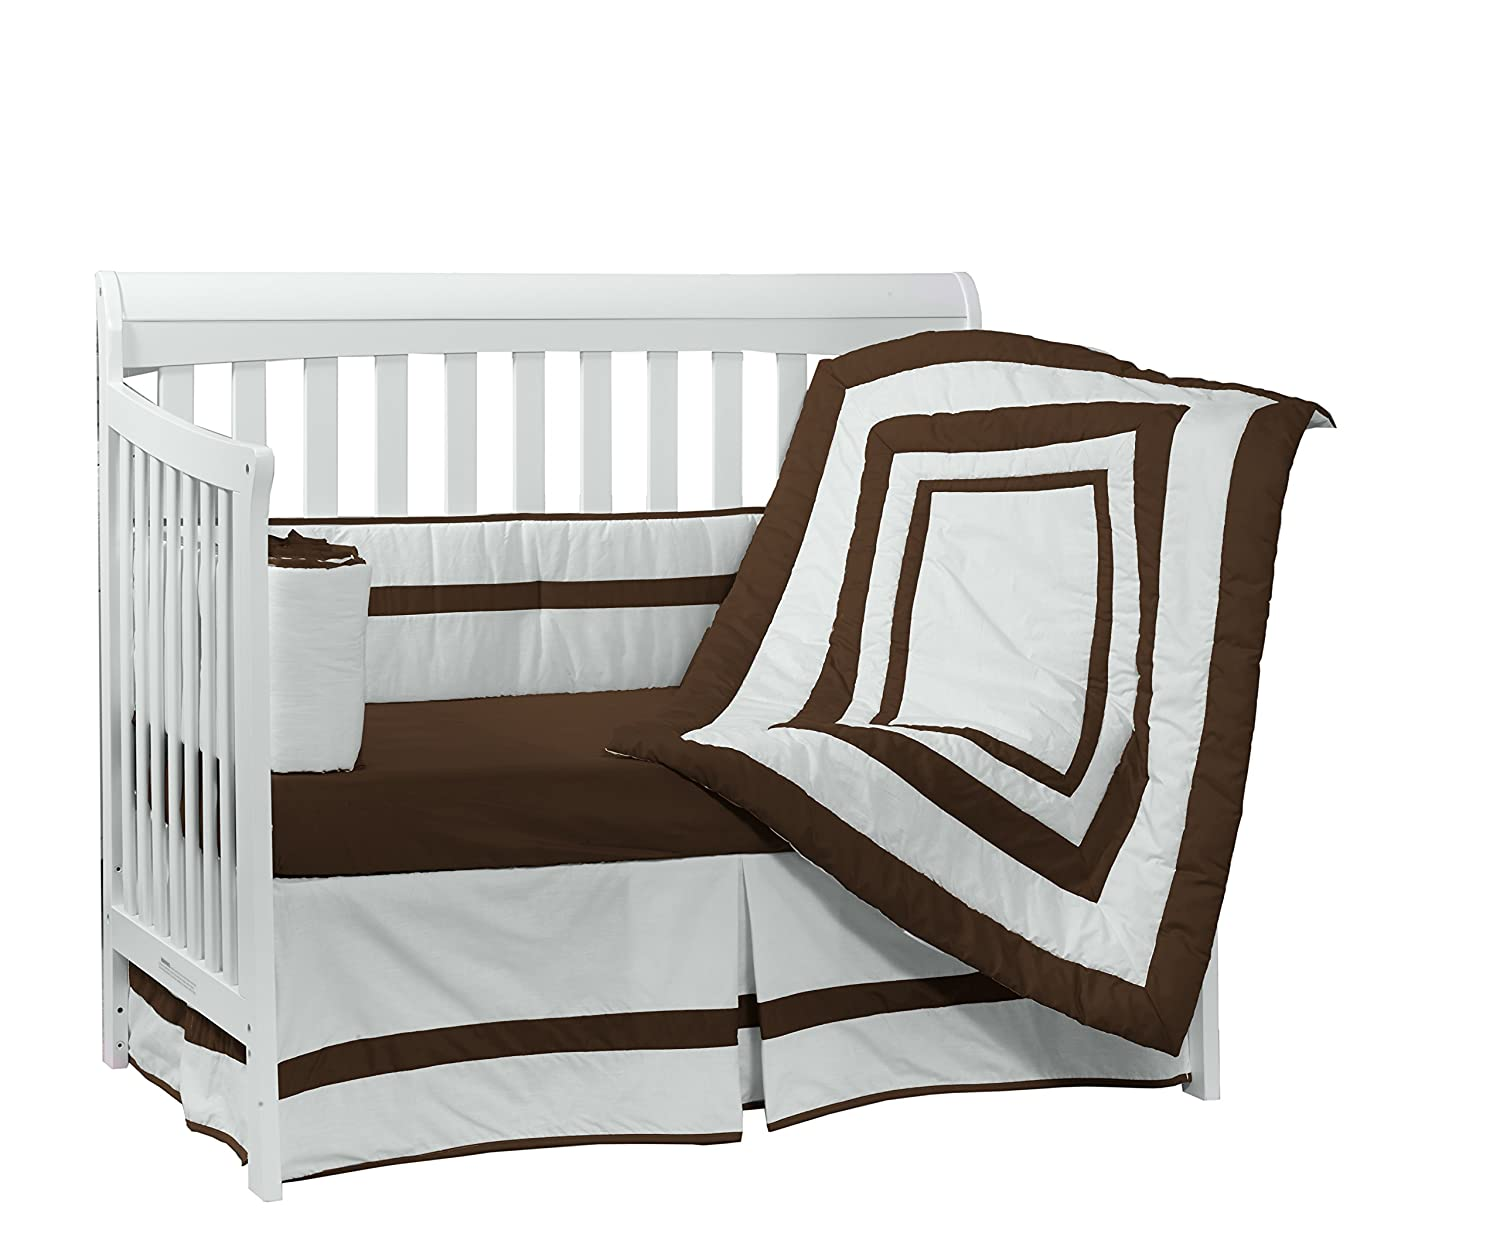 Baby Doll Bedding Modern Hotel Style Crib Bedding Set, Chocolate by BabyDoll Bedding   B008B346TE